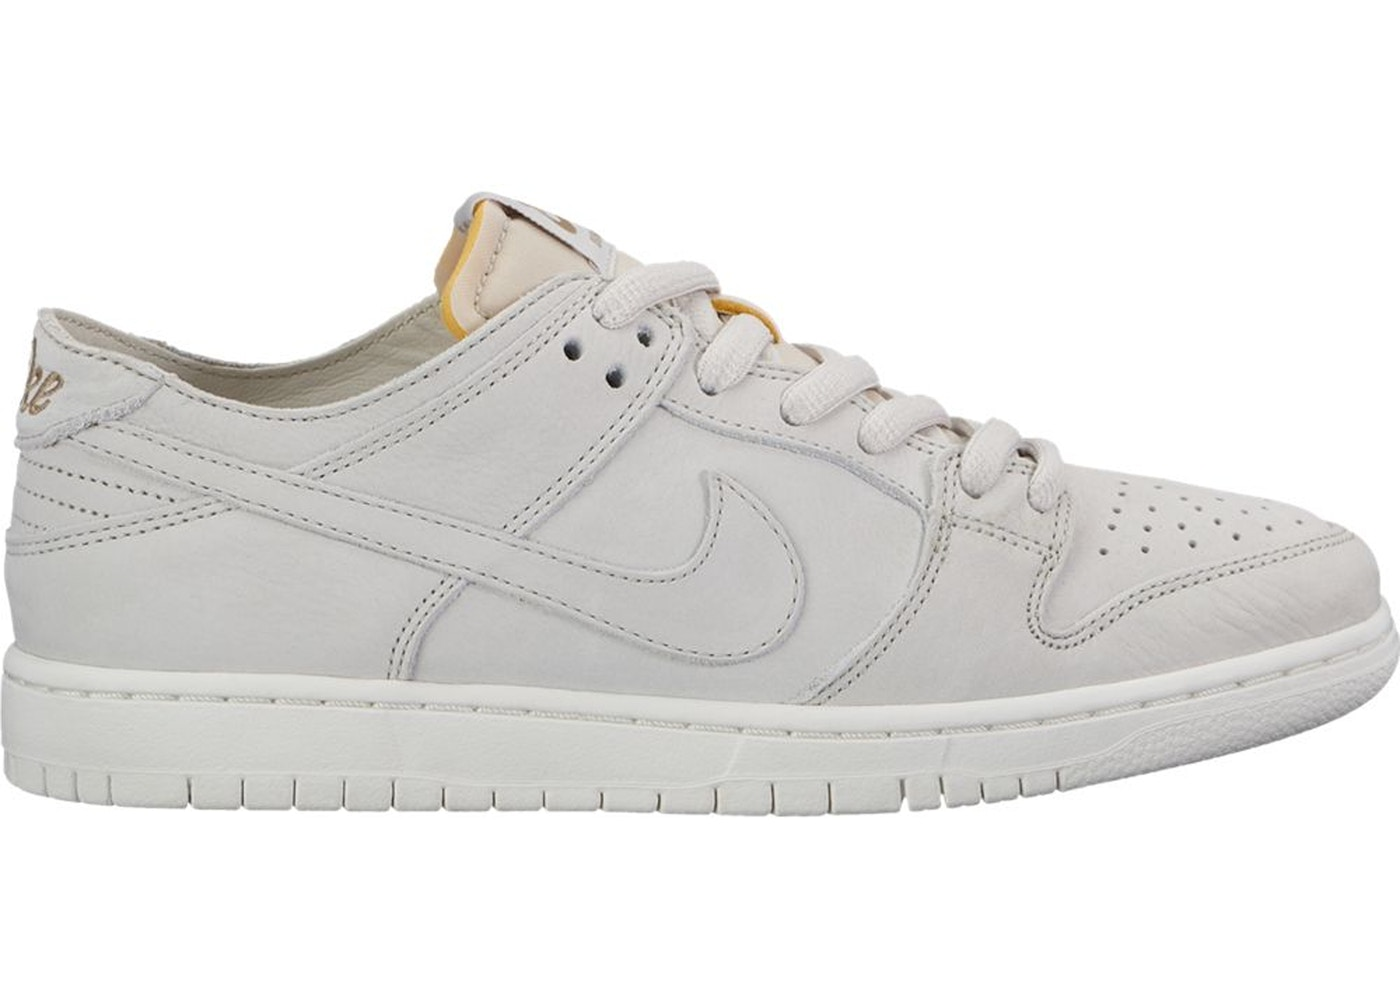 00e23ab0cf HypeAnalyzer · Nike SB Dunk Low Decon Light Bone